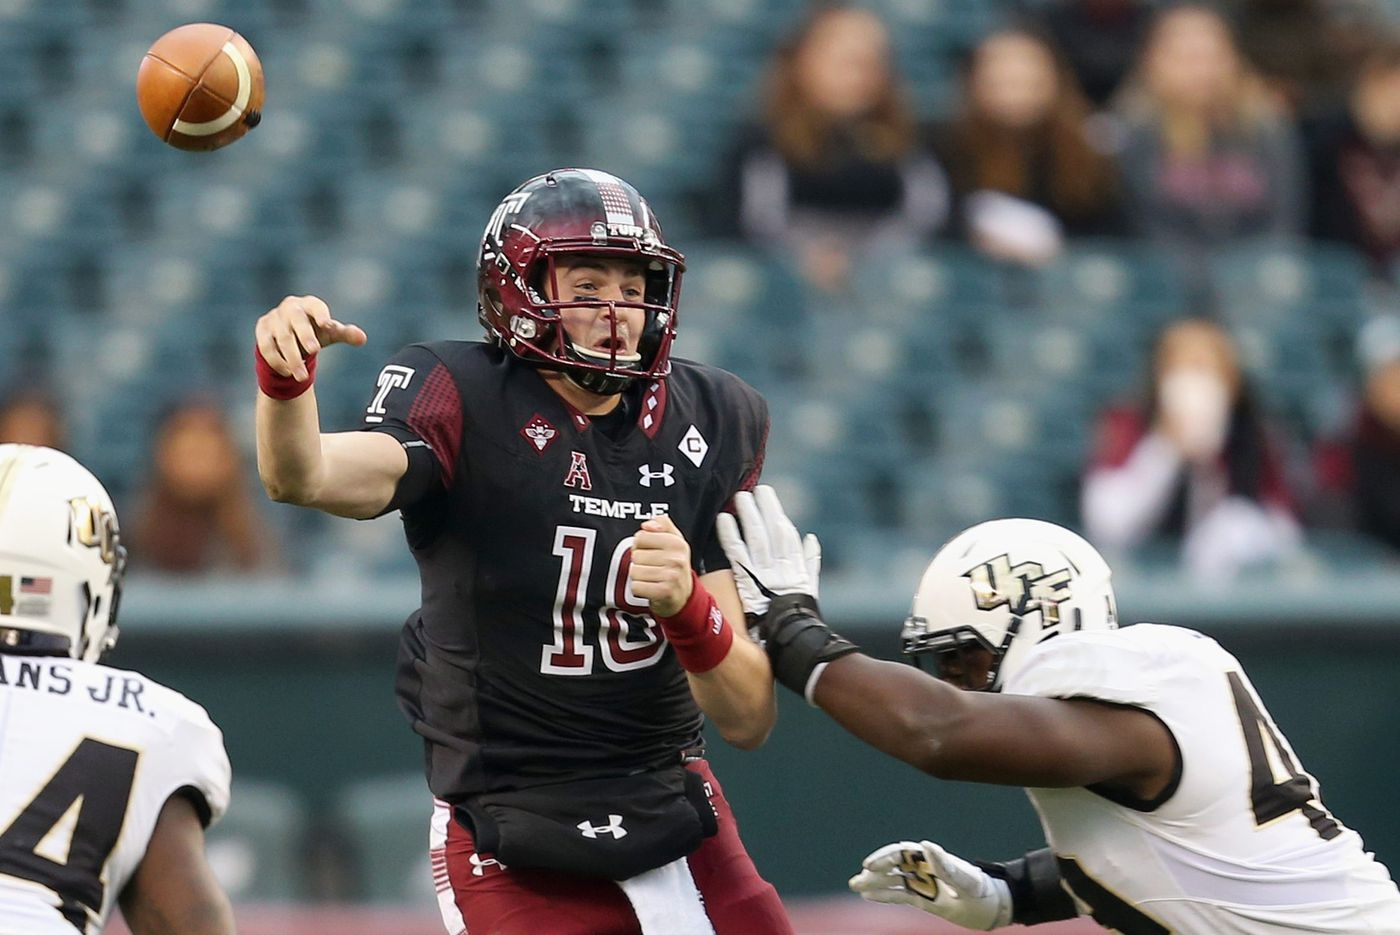 Temple enters 2018 football season with different outlook